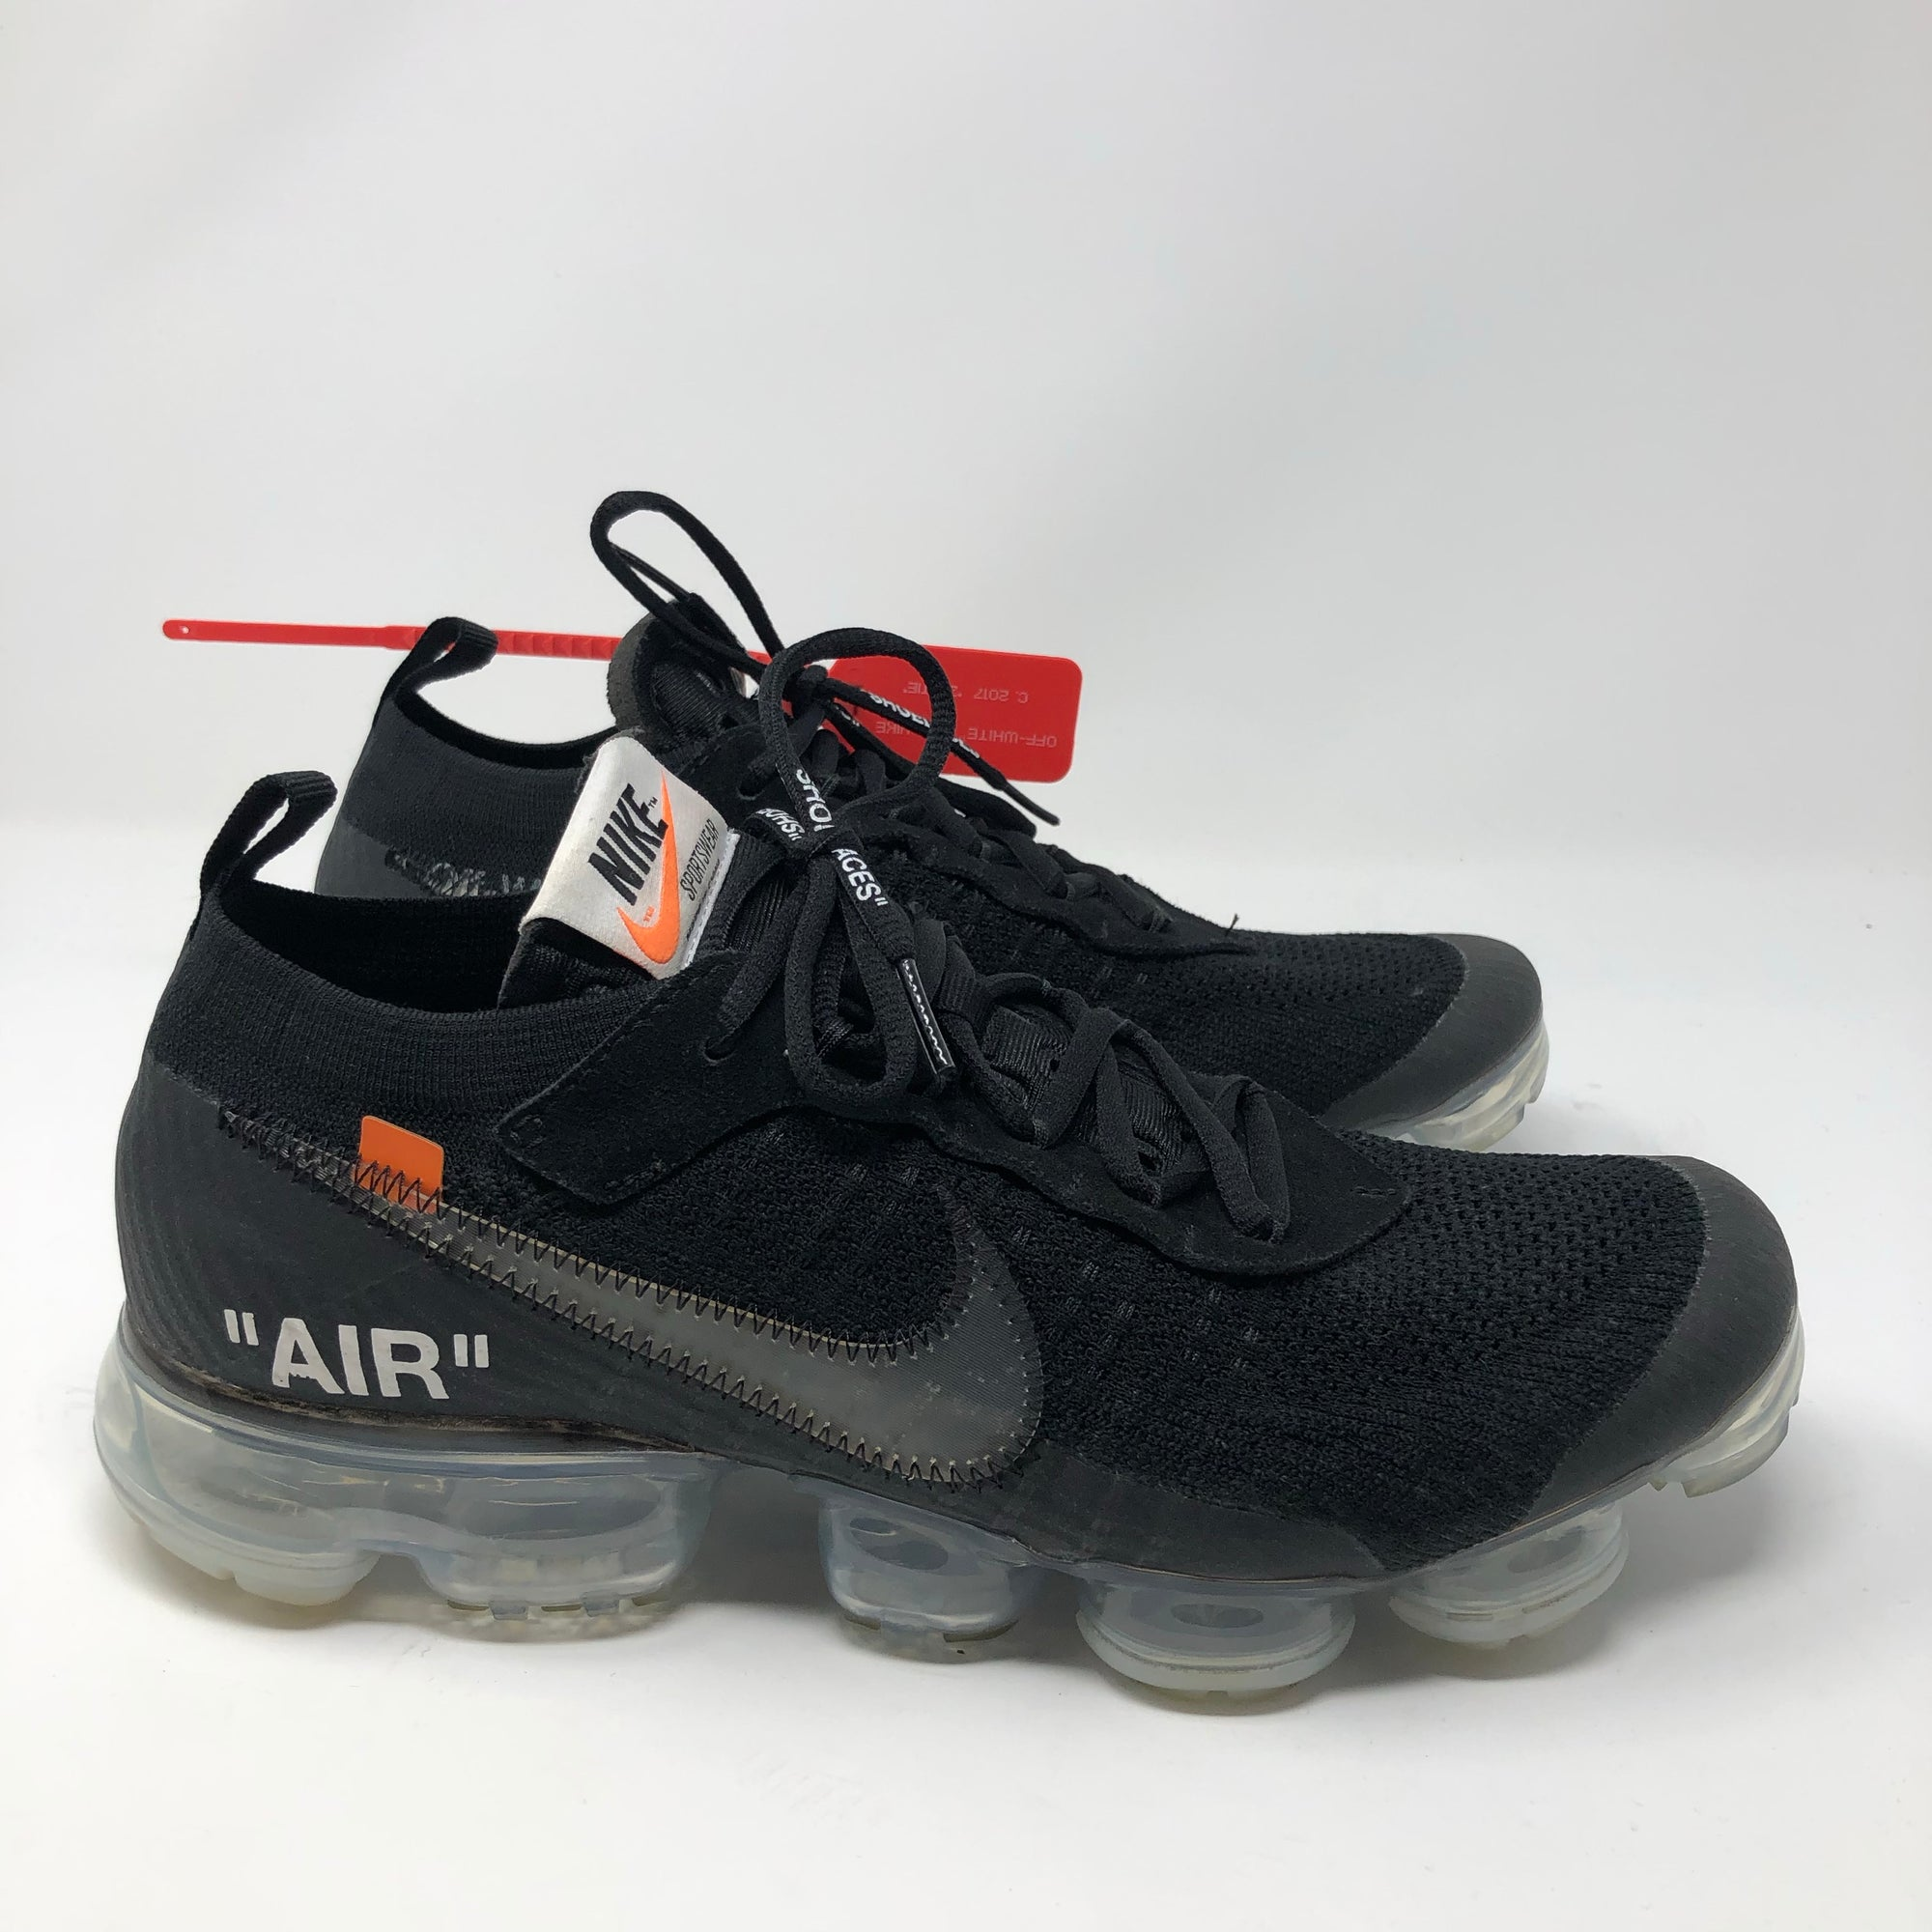 the best attitude 41af1 2e8bd The 10: Nike Off-White Vapormax 2.0 Pre Owned Size 10